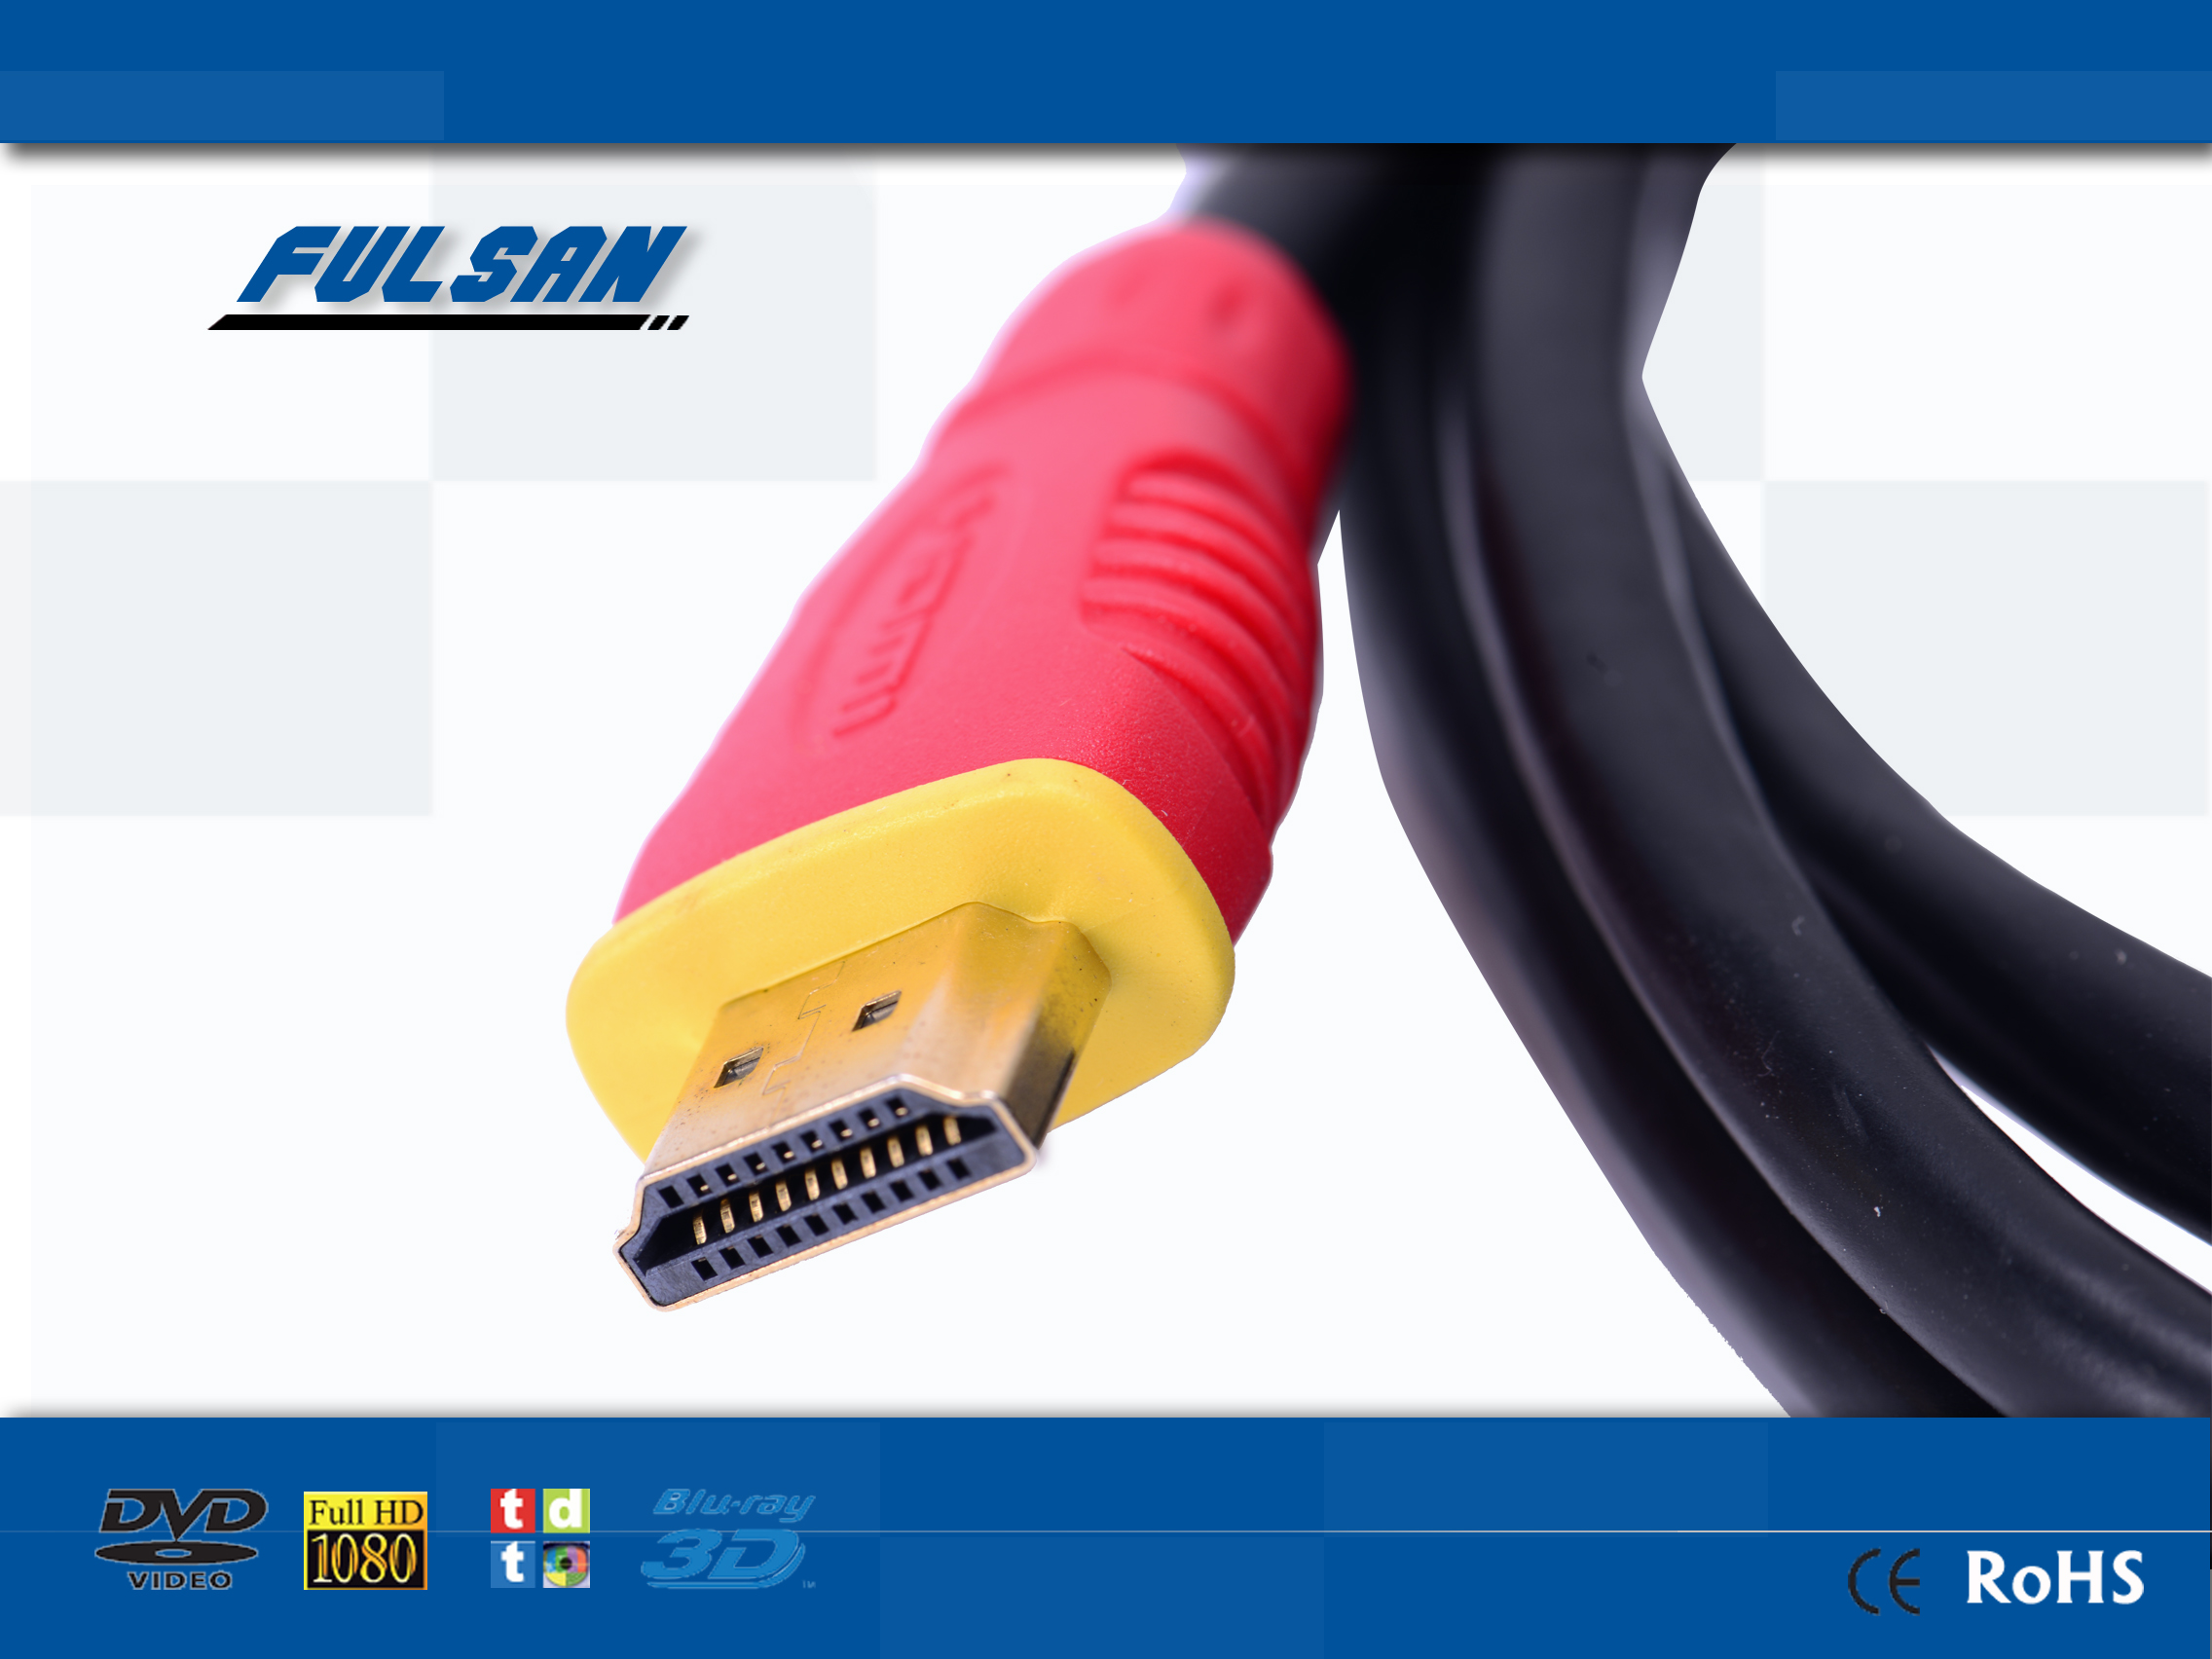 Hot Selling Hdmi Optical Cable Hdmi Cable Awm Style 20276 Hdmi Cable Awm 20276